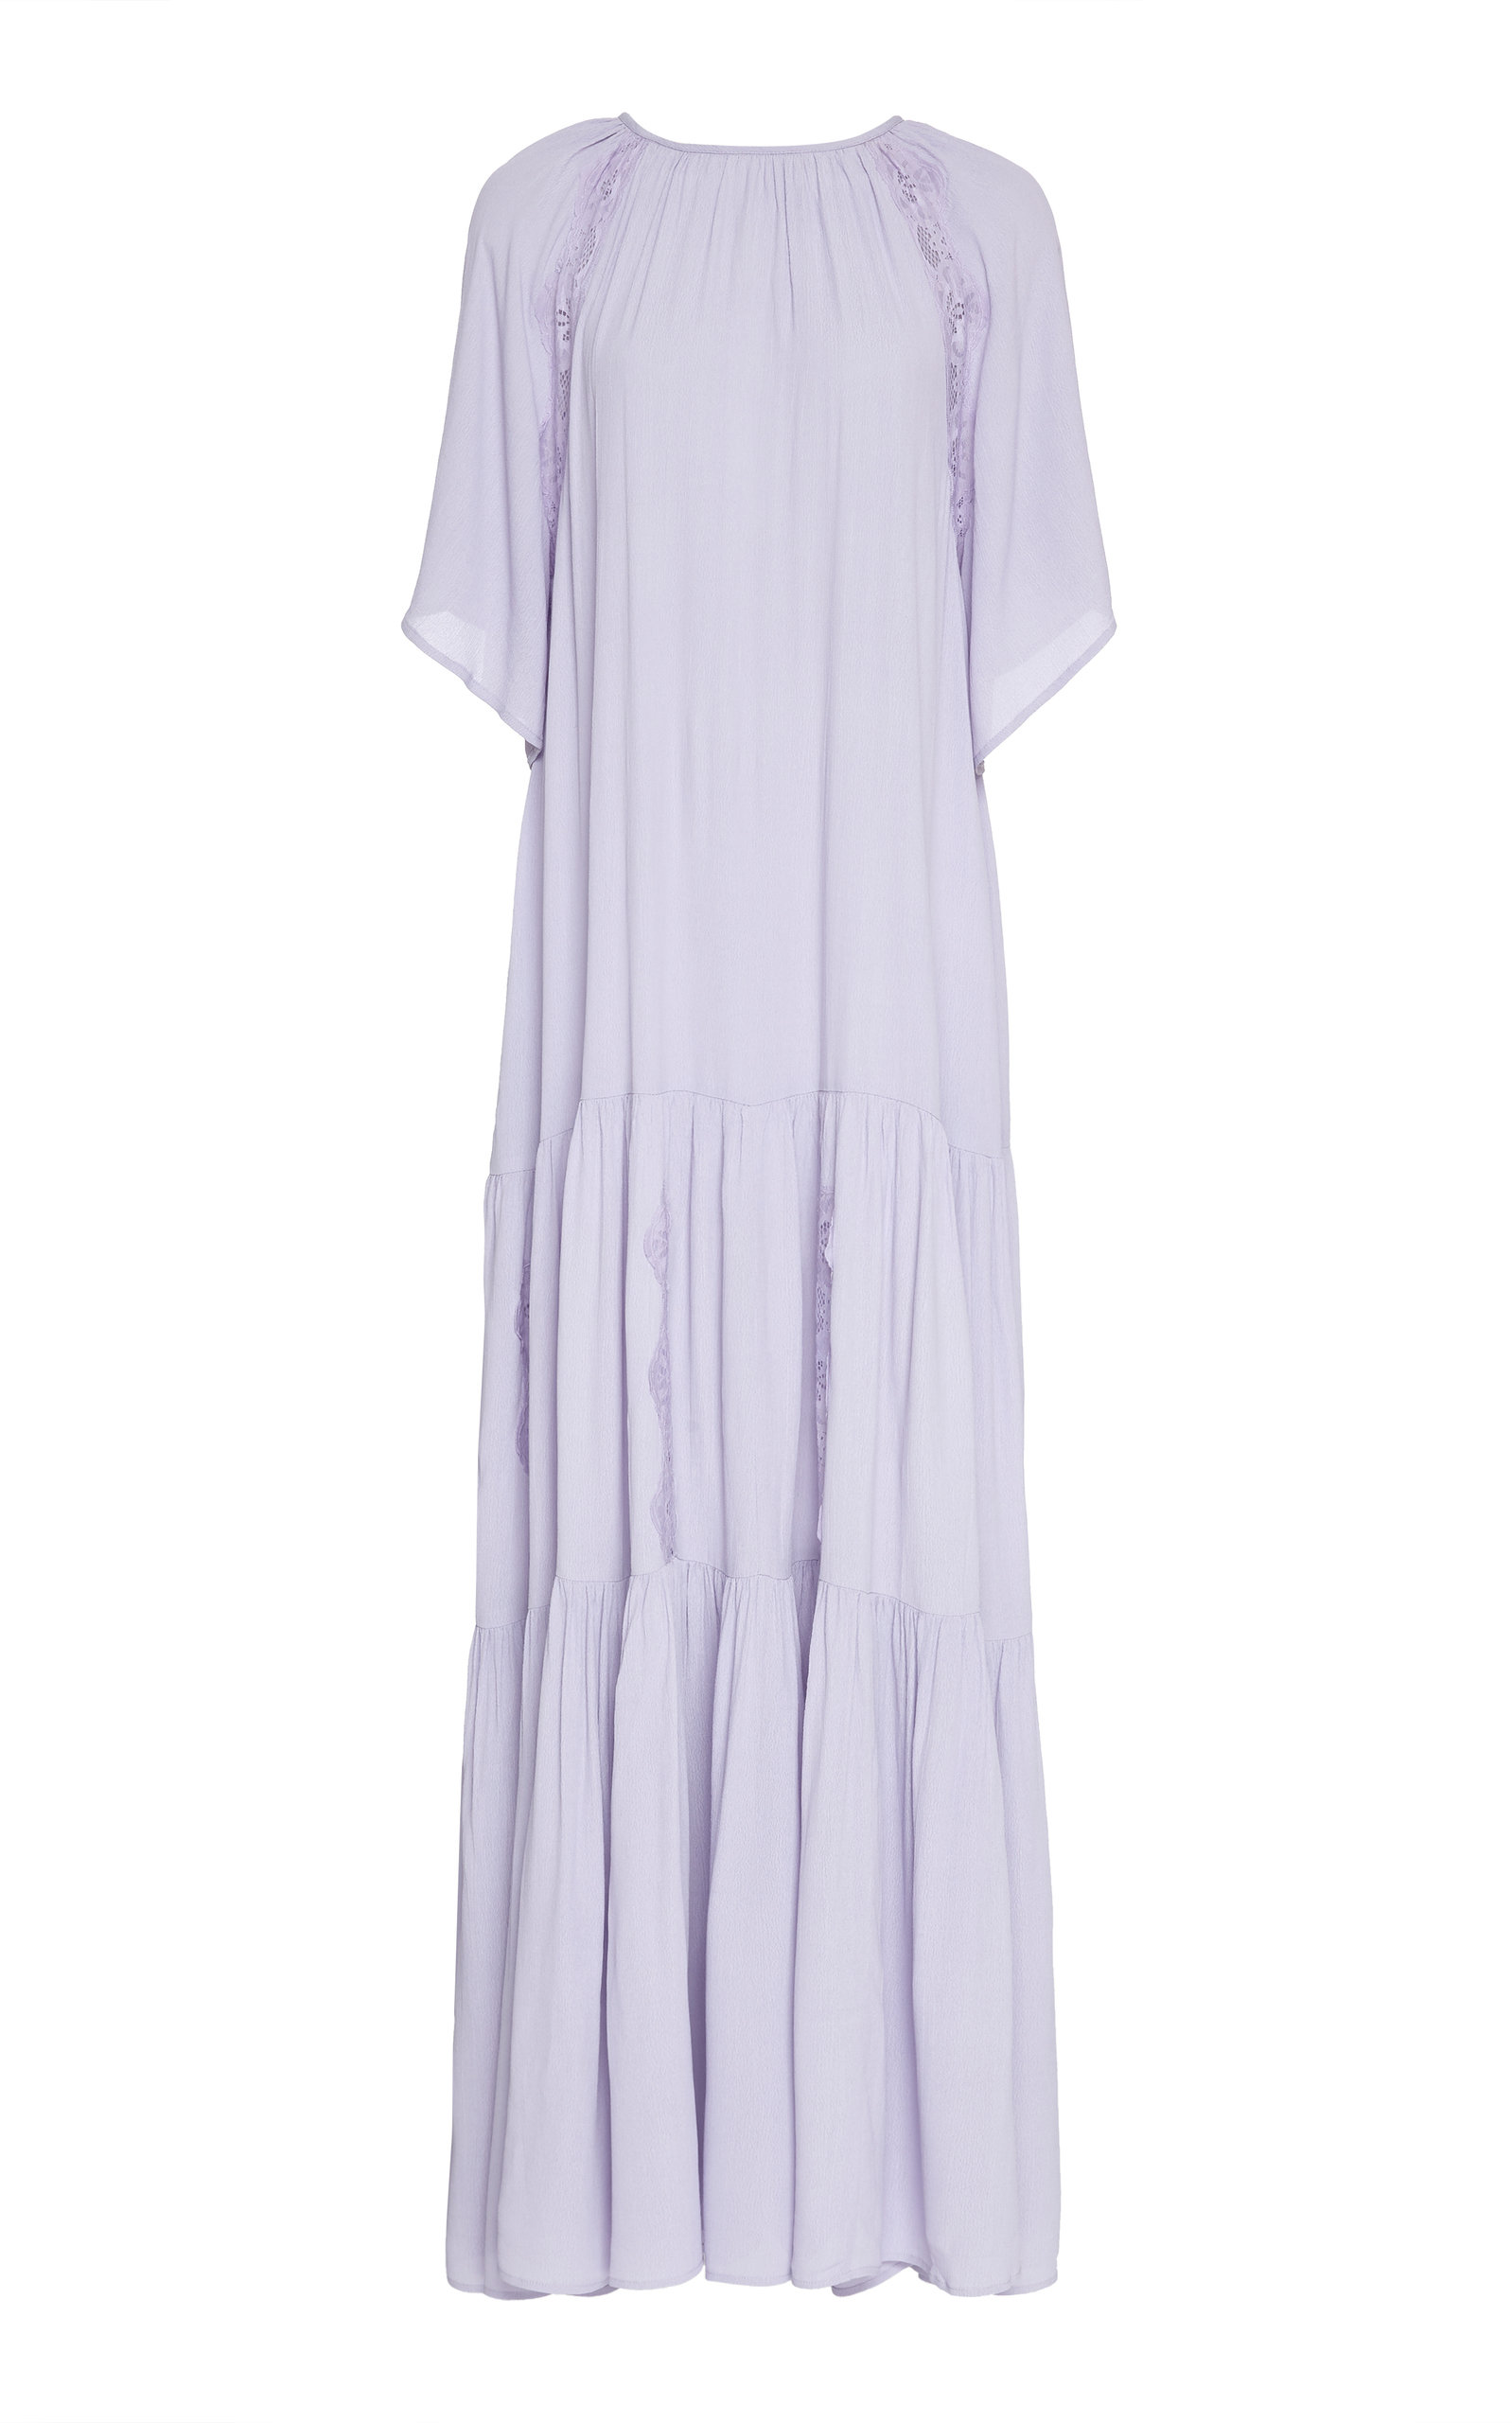 Buy byTiMo Tiered Crepe Maxi Dress online, shop byTiMo at the best price